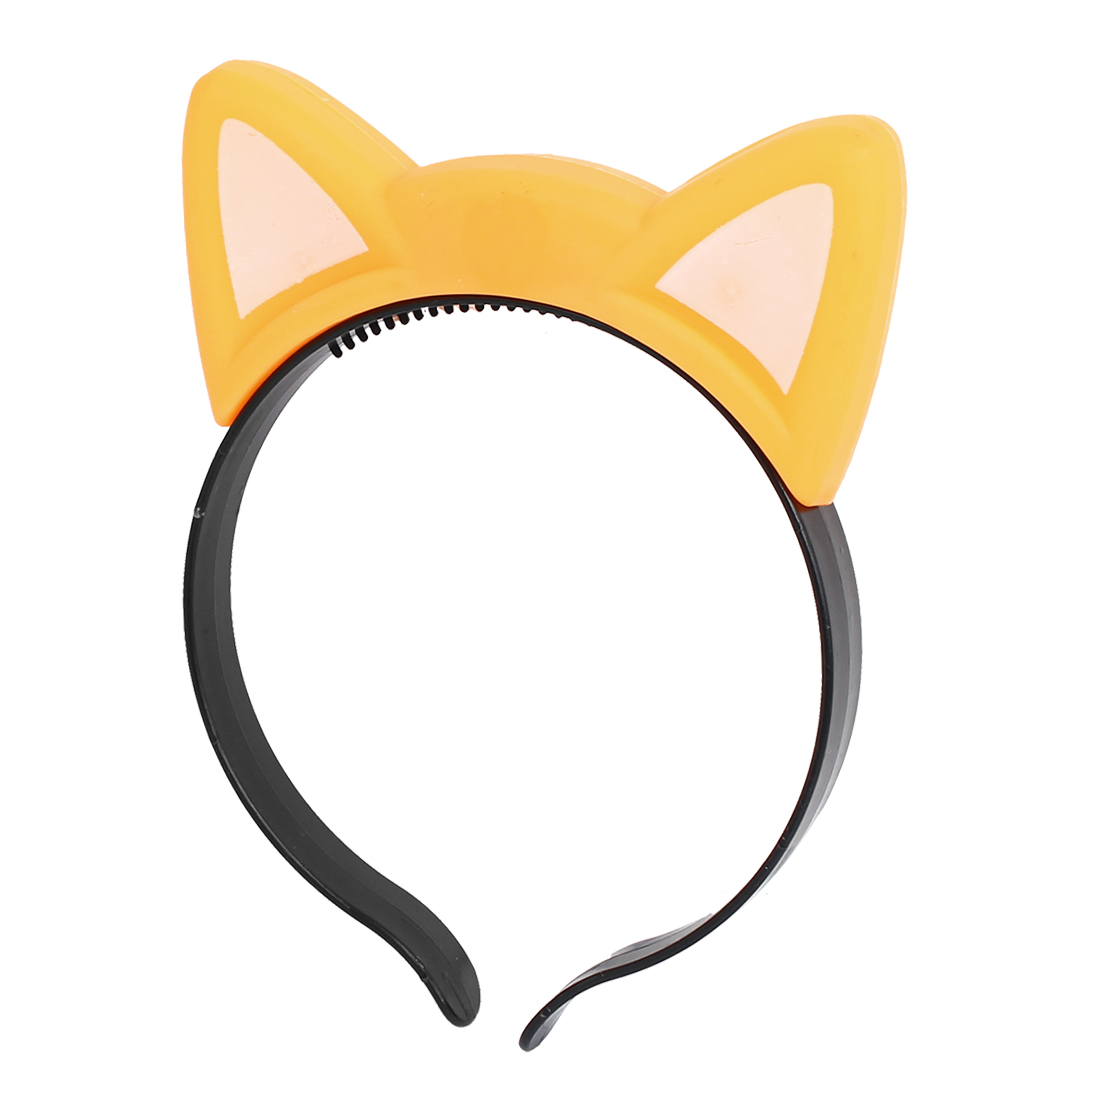 Party Cosplay Flashing LED Cat Ear Design Light Hair Band Hairband Headband Yellow